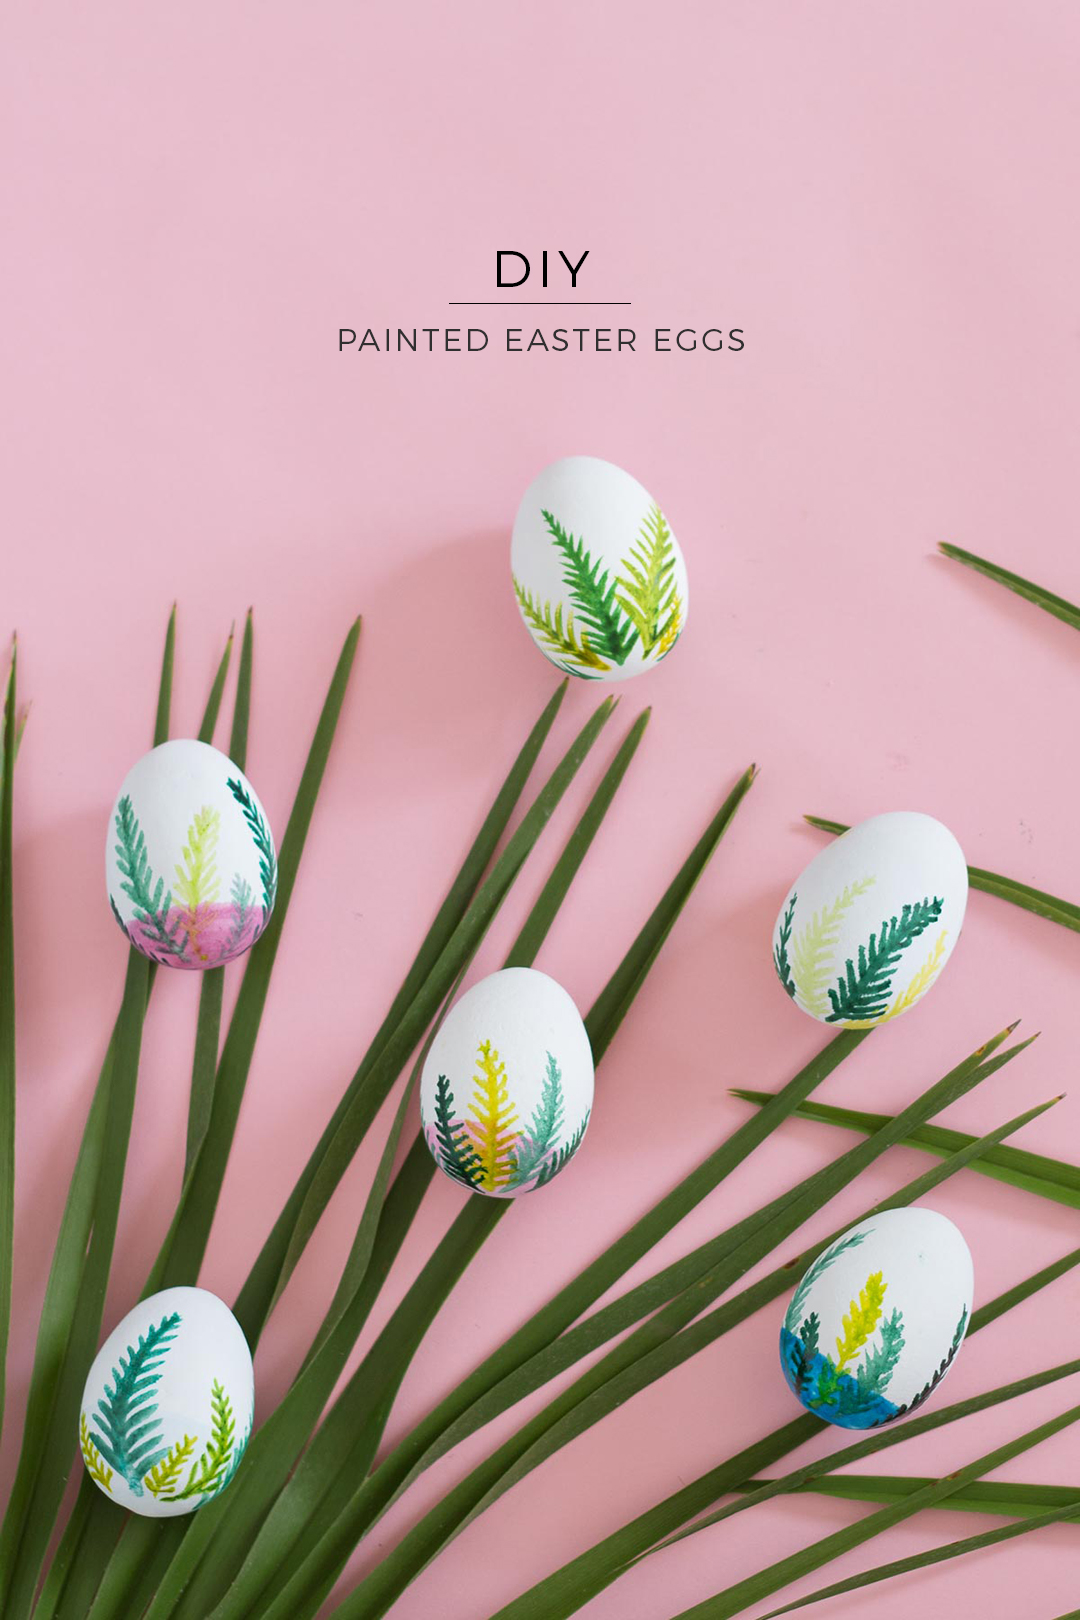 Watercolor Painted Easter Eggs - Chocolate Eggs Decor